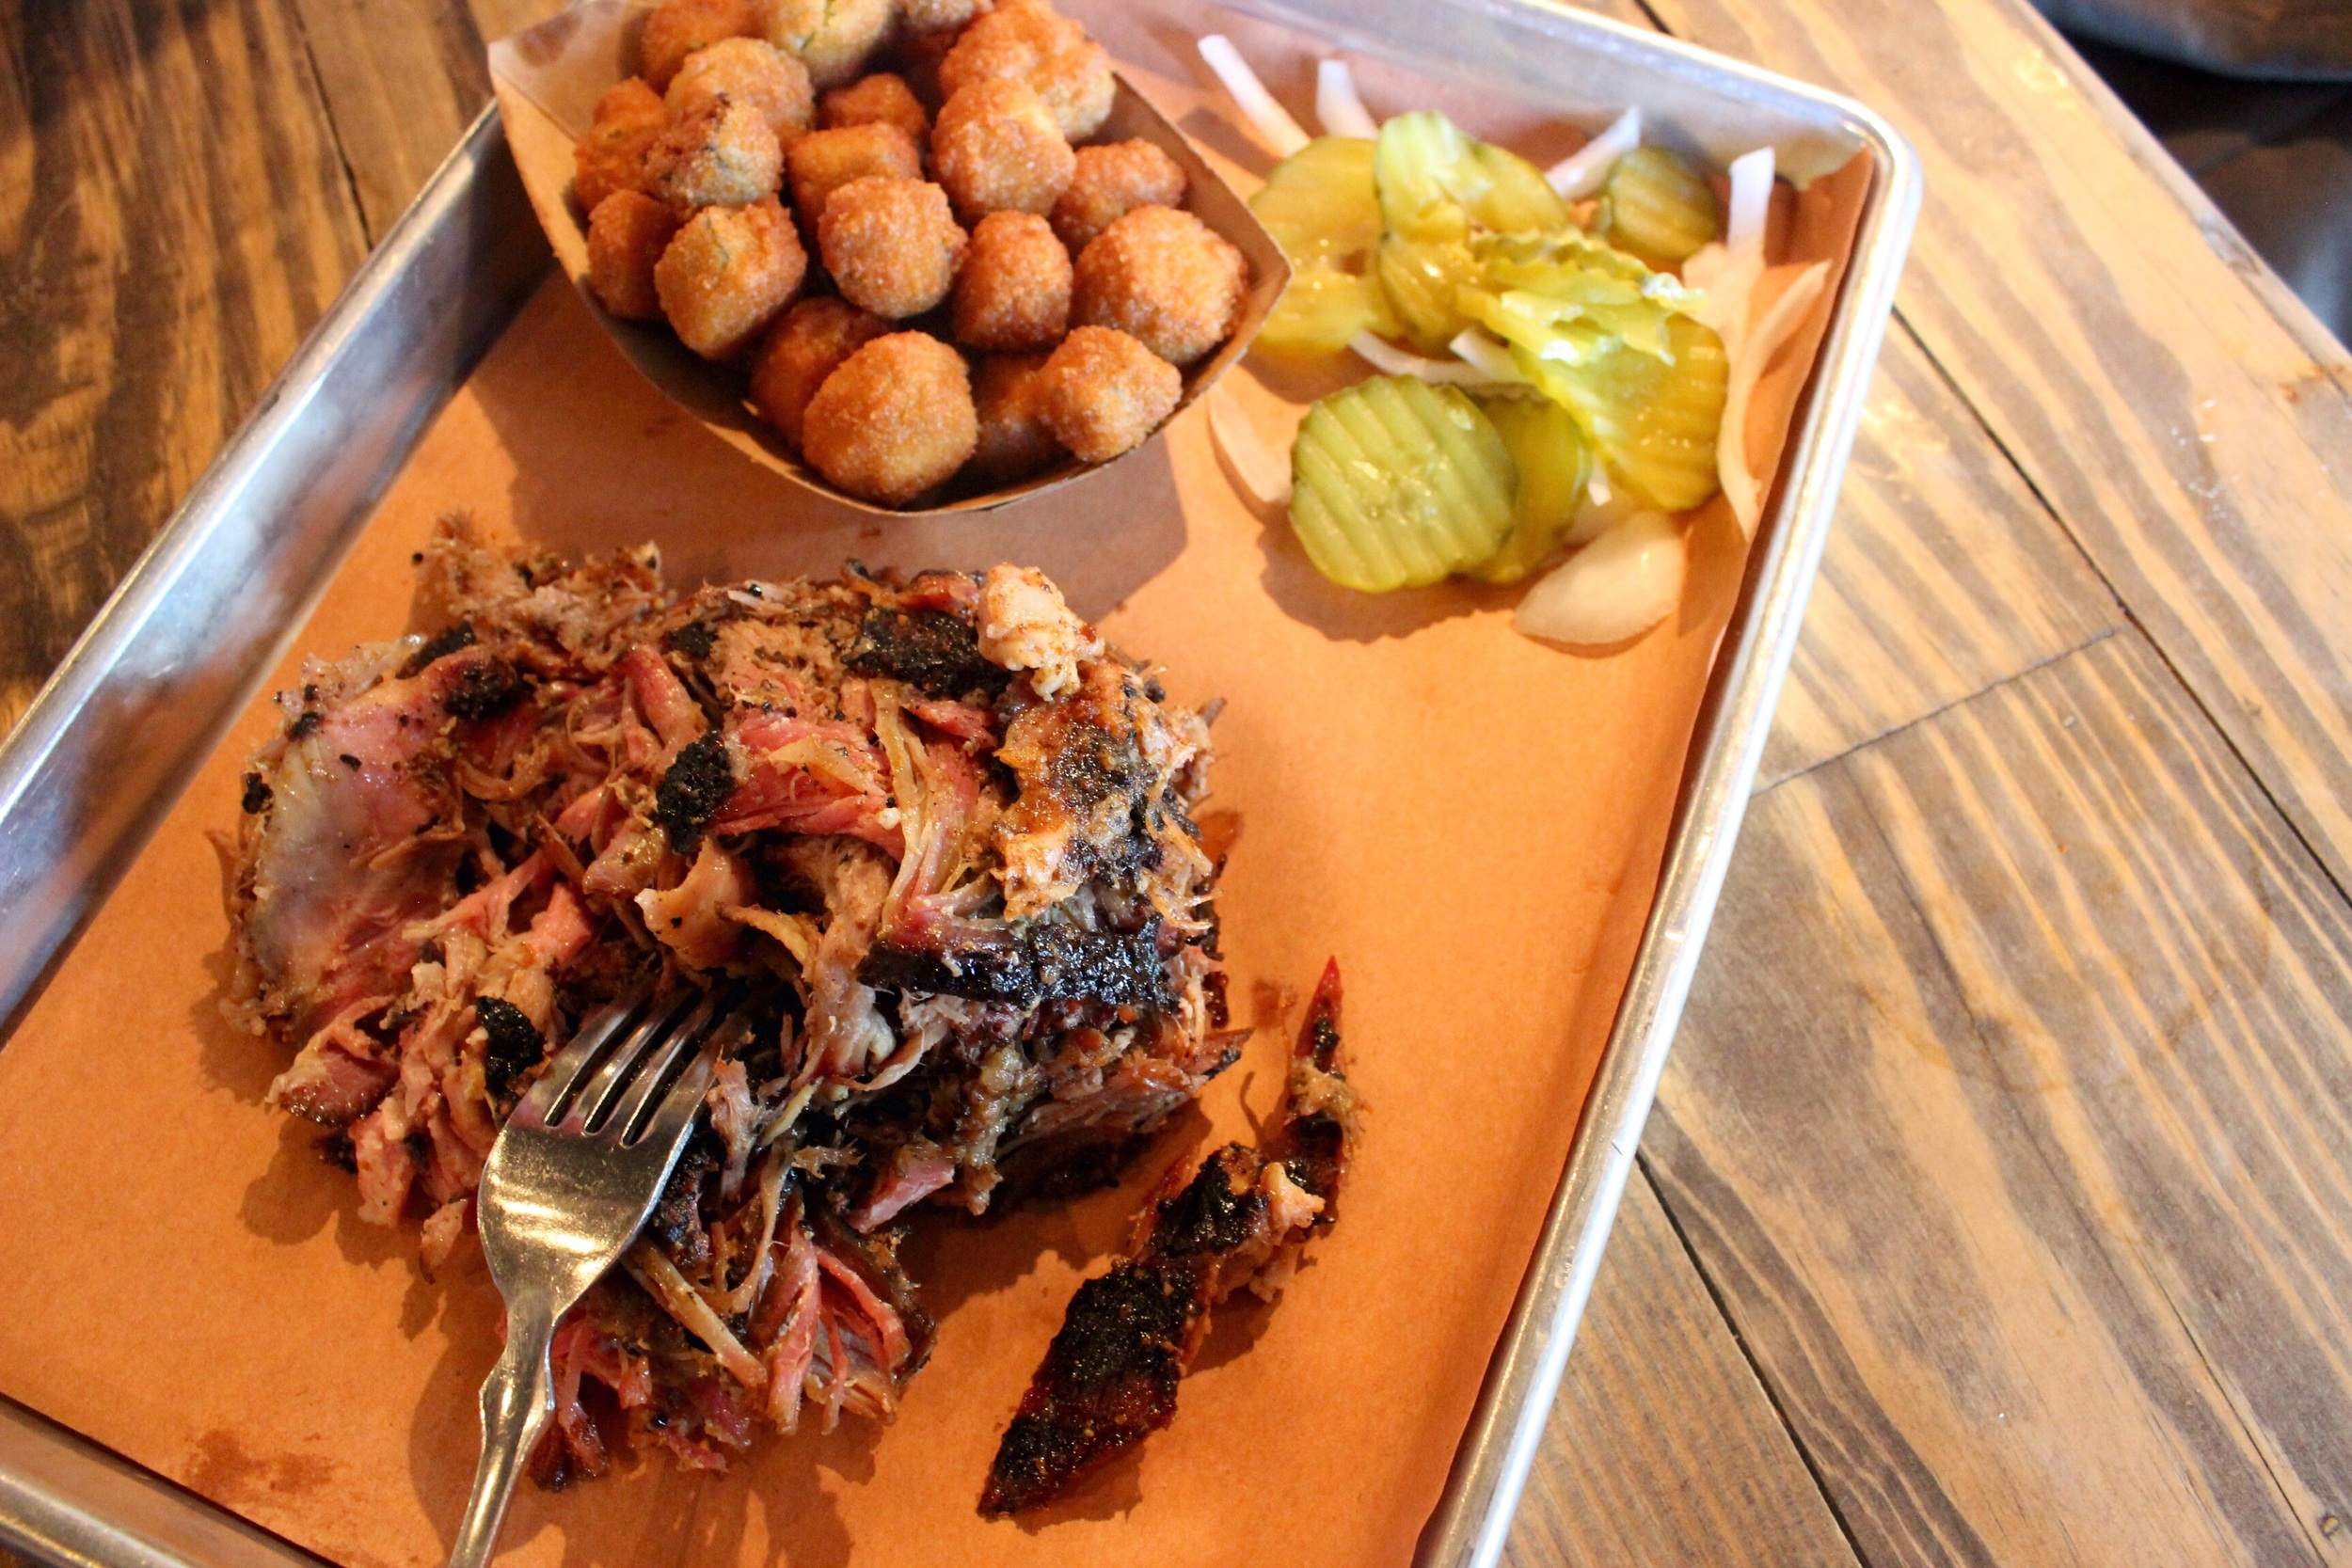 Pulled pork, fried okra